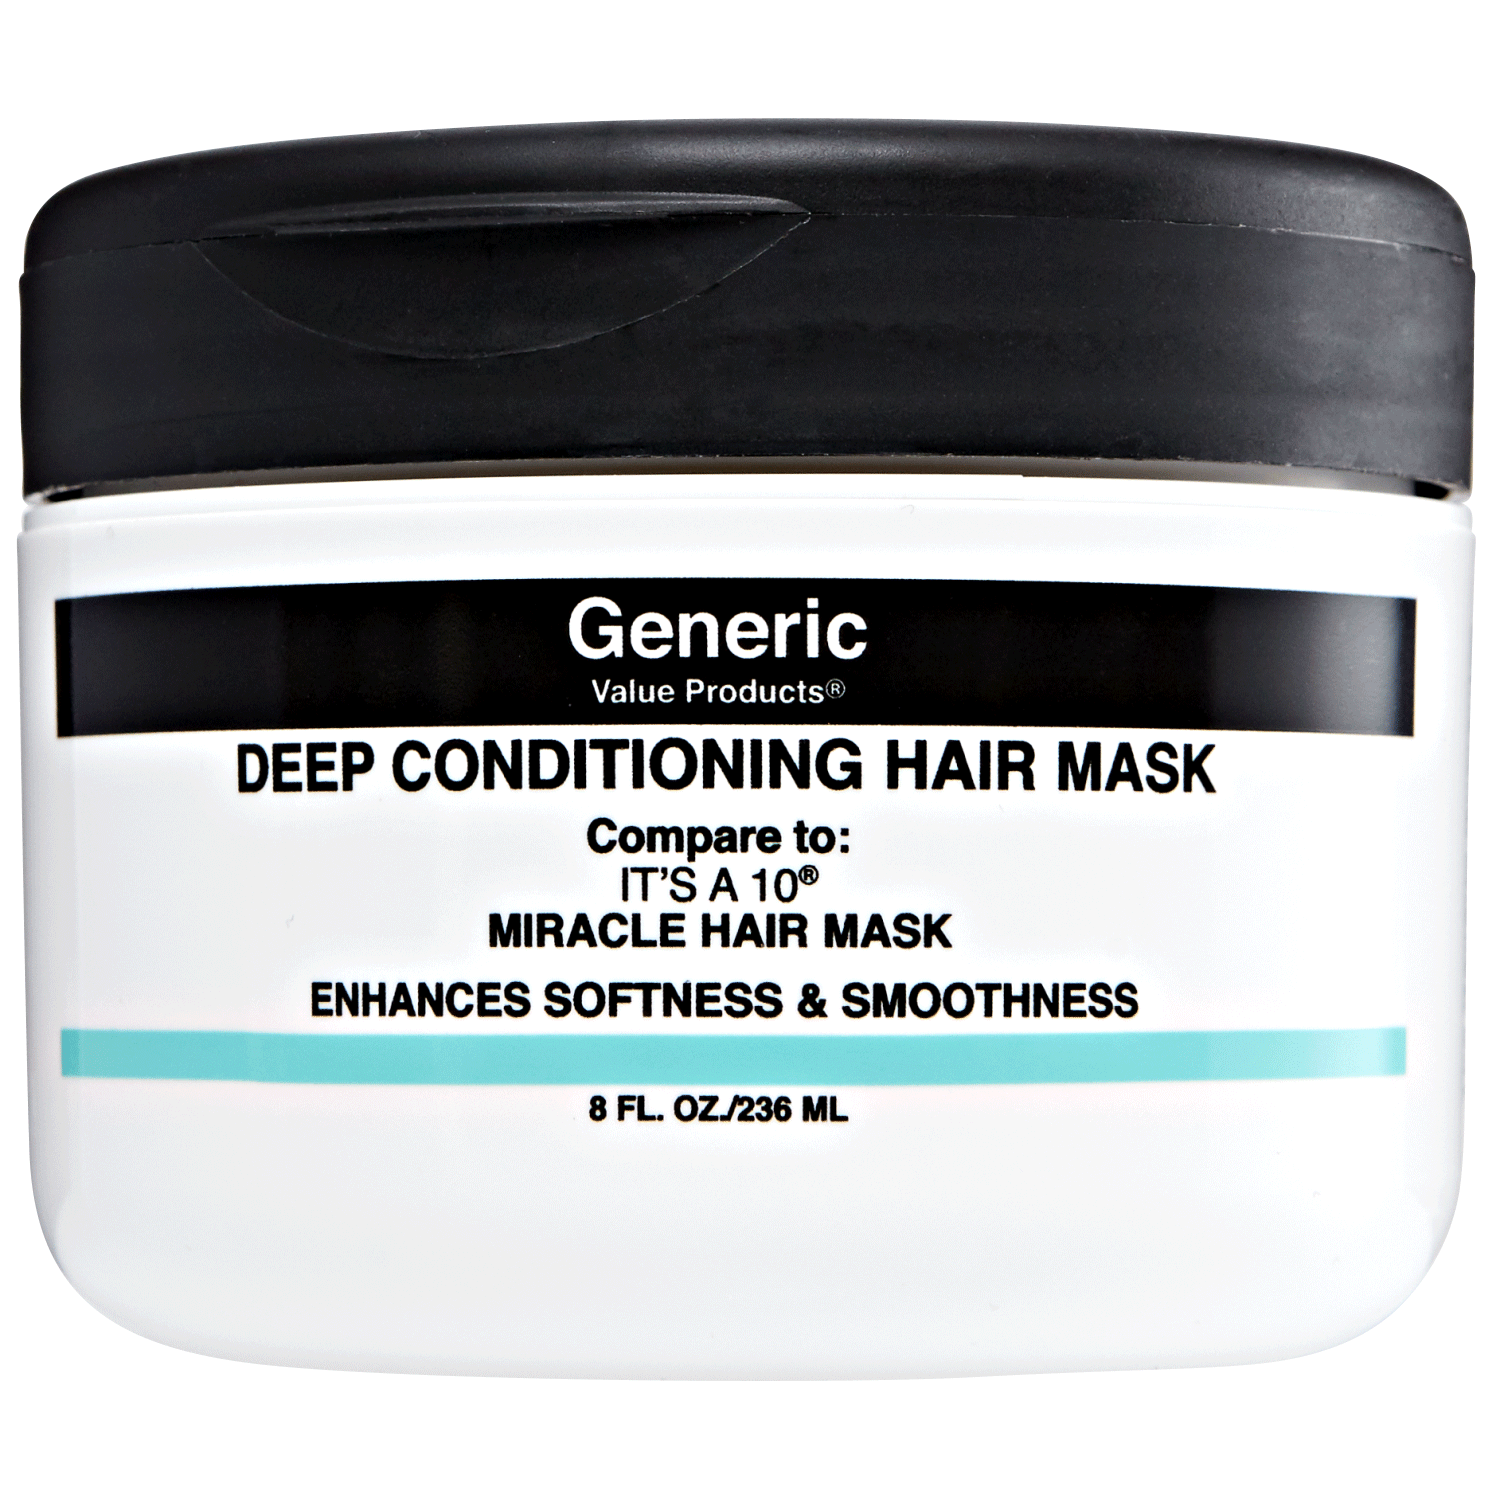 Generic Value Products Deep Conditioning Hair Mask Compare to It's a 10 Miracle Hair Mask